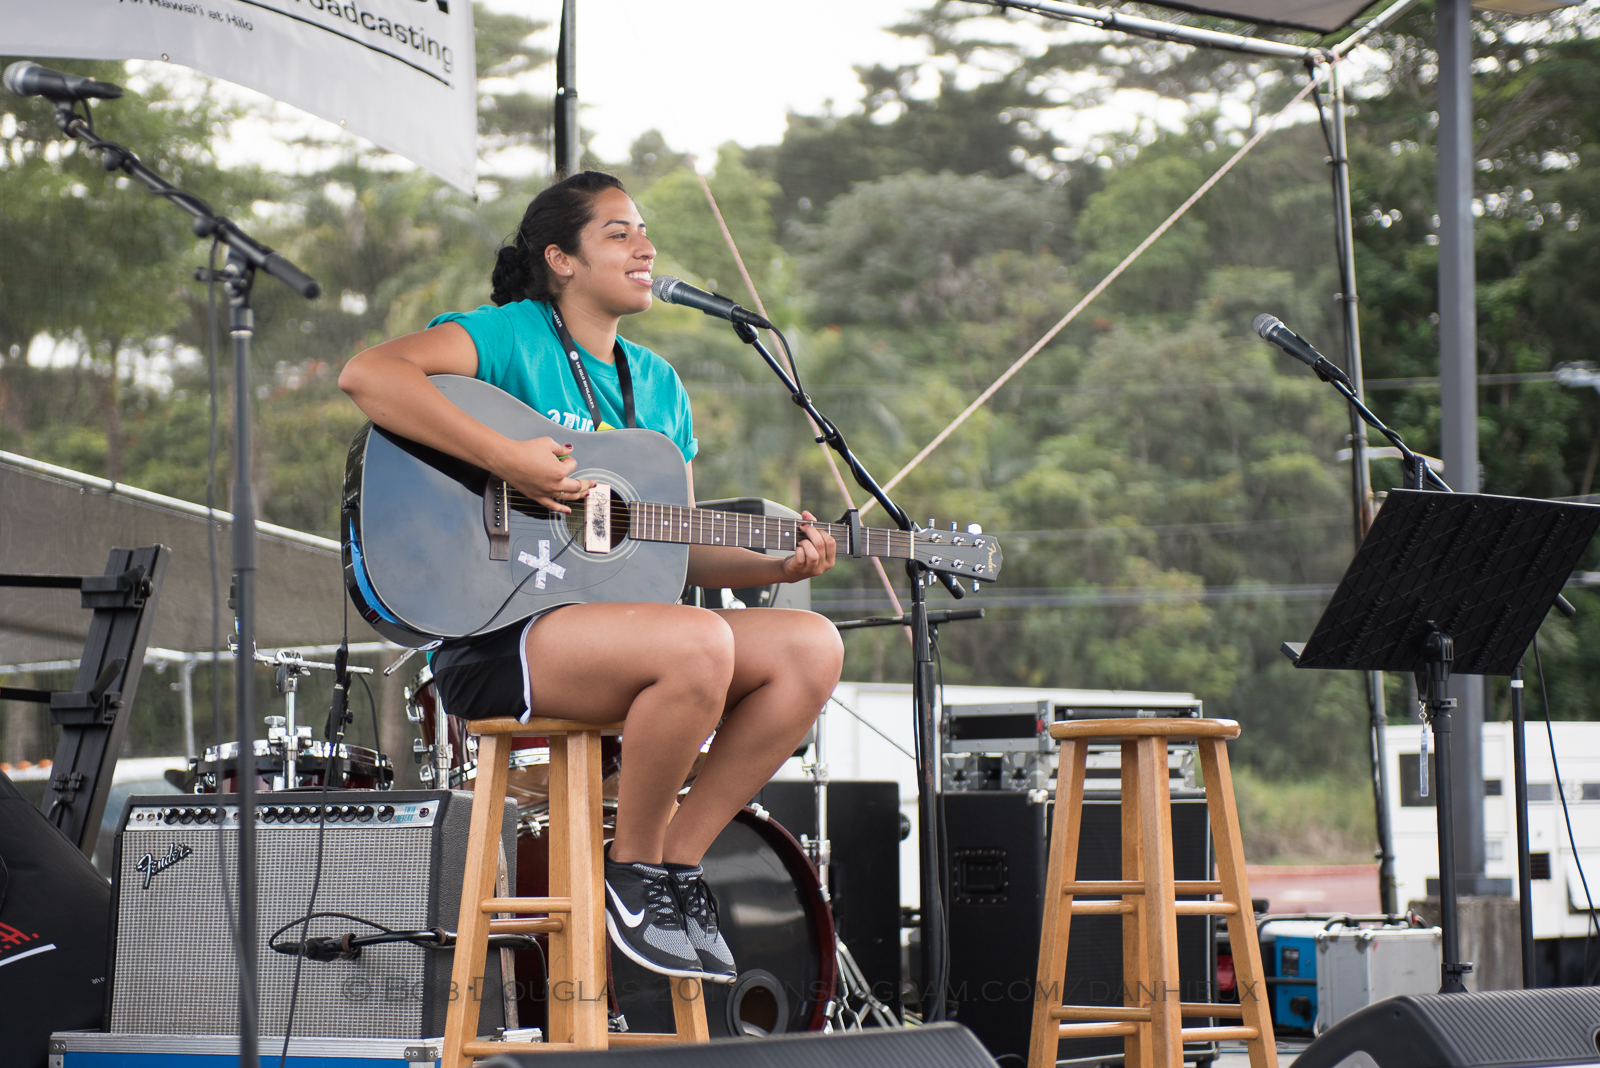 Woman with guitar on stage.